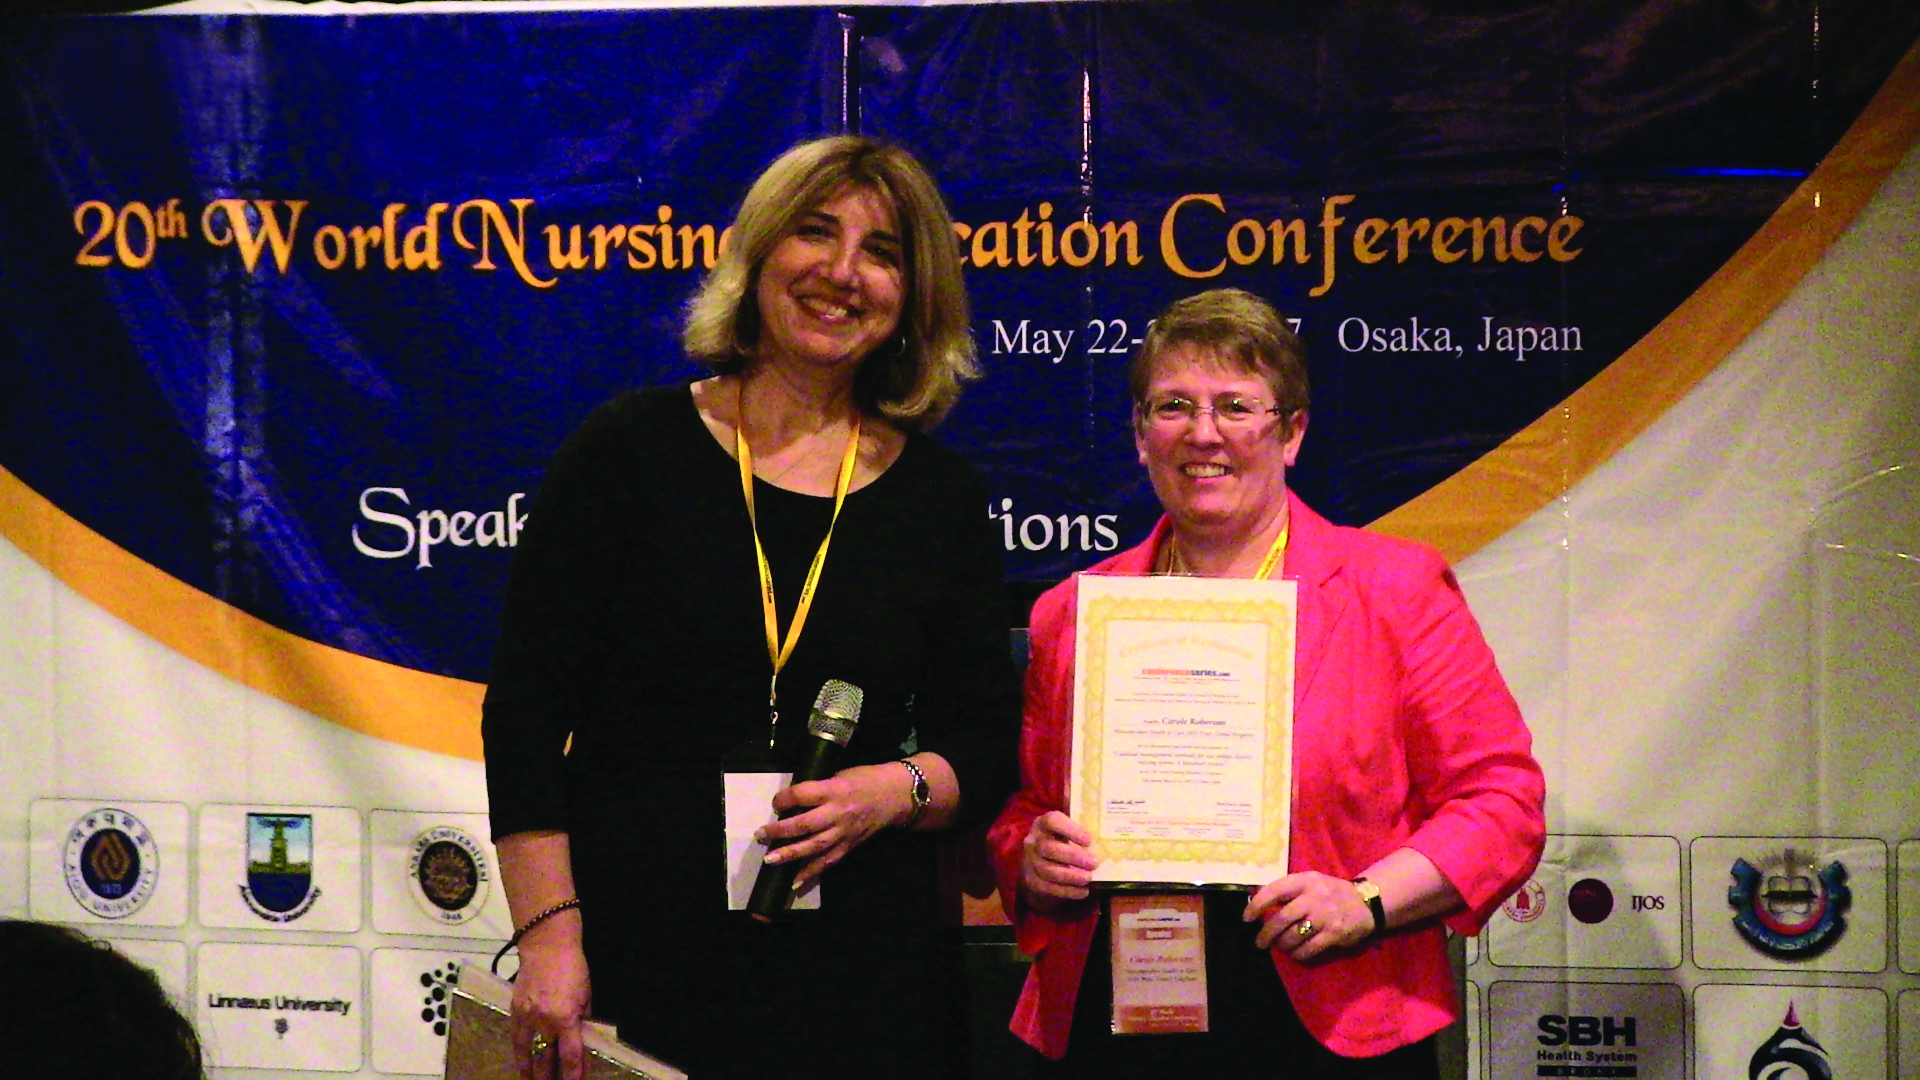 Image of Angela Babaev, RN at 20th World Nursing Education Conference